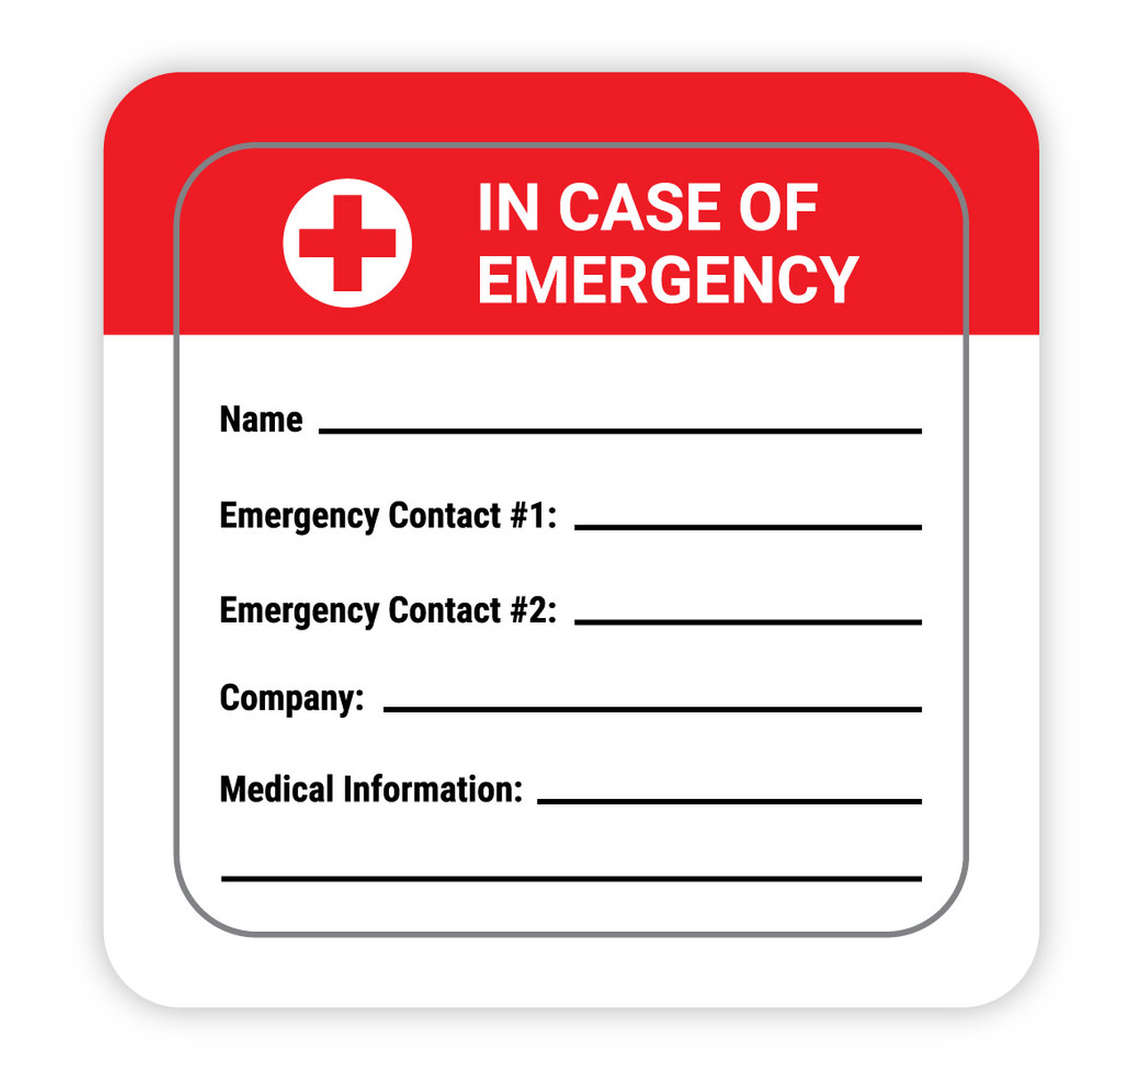 in case of emergency form